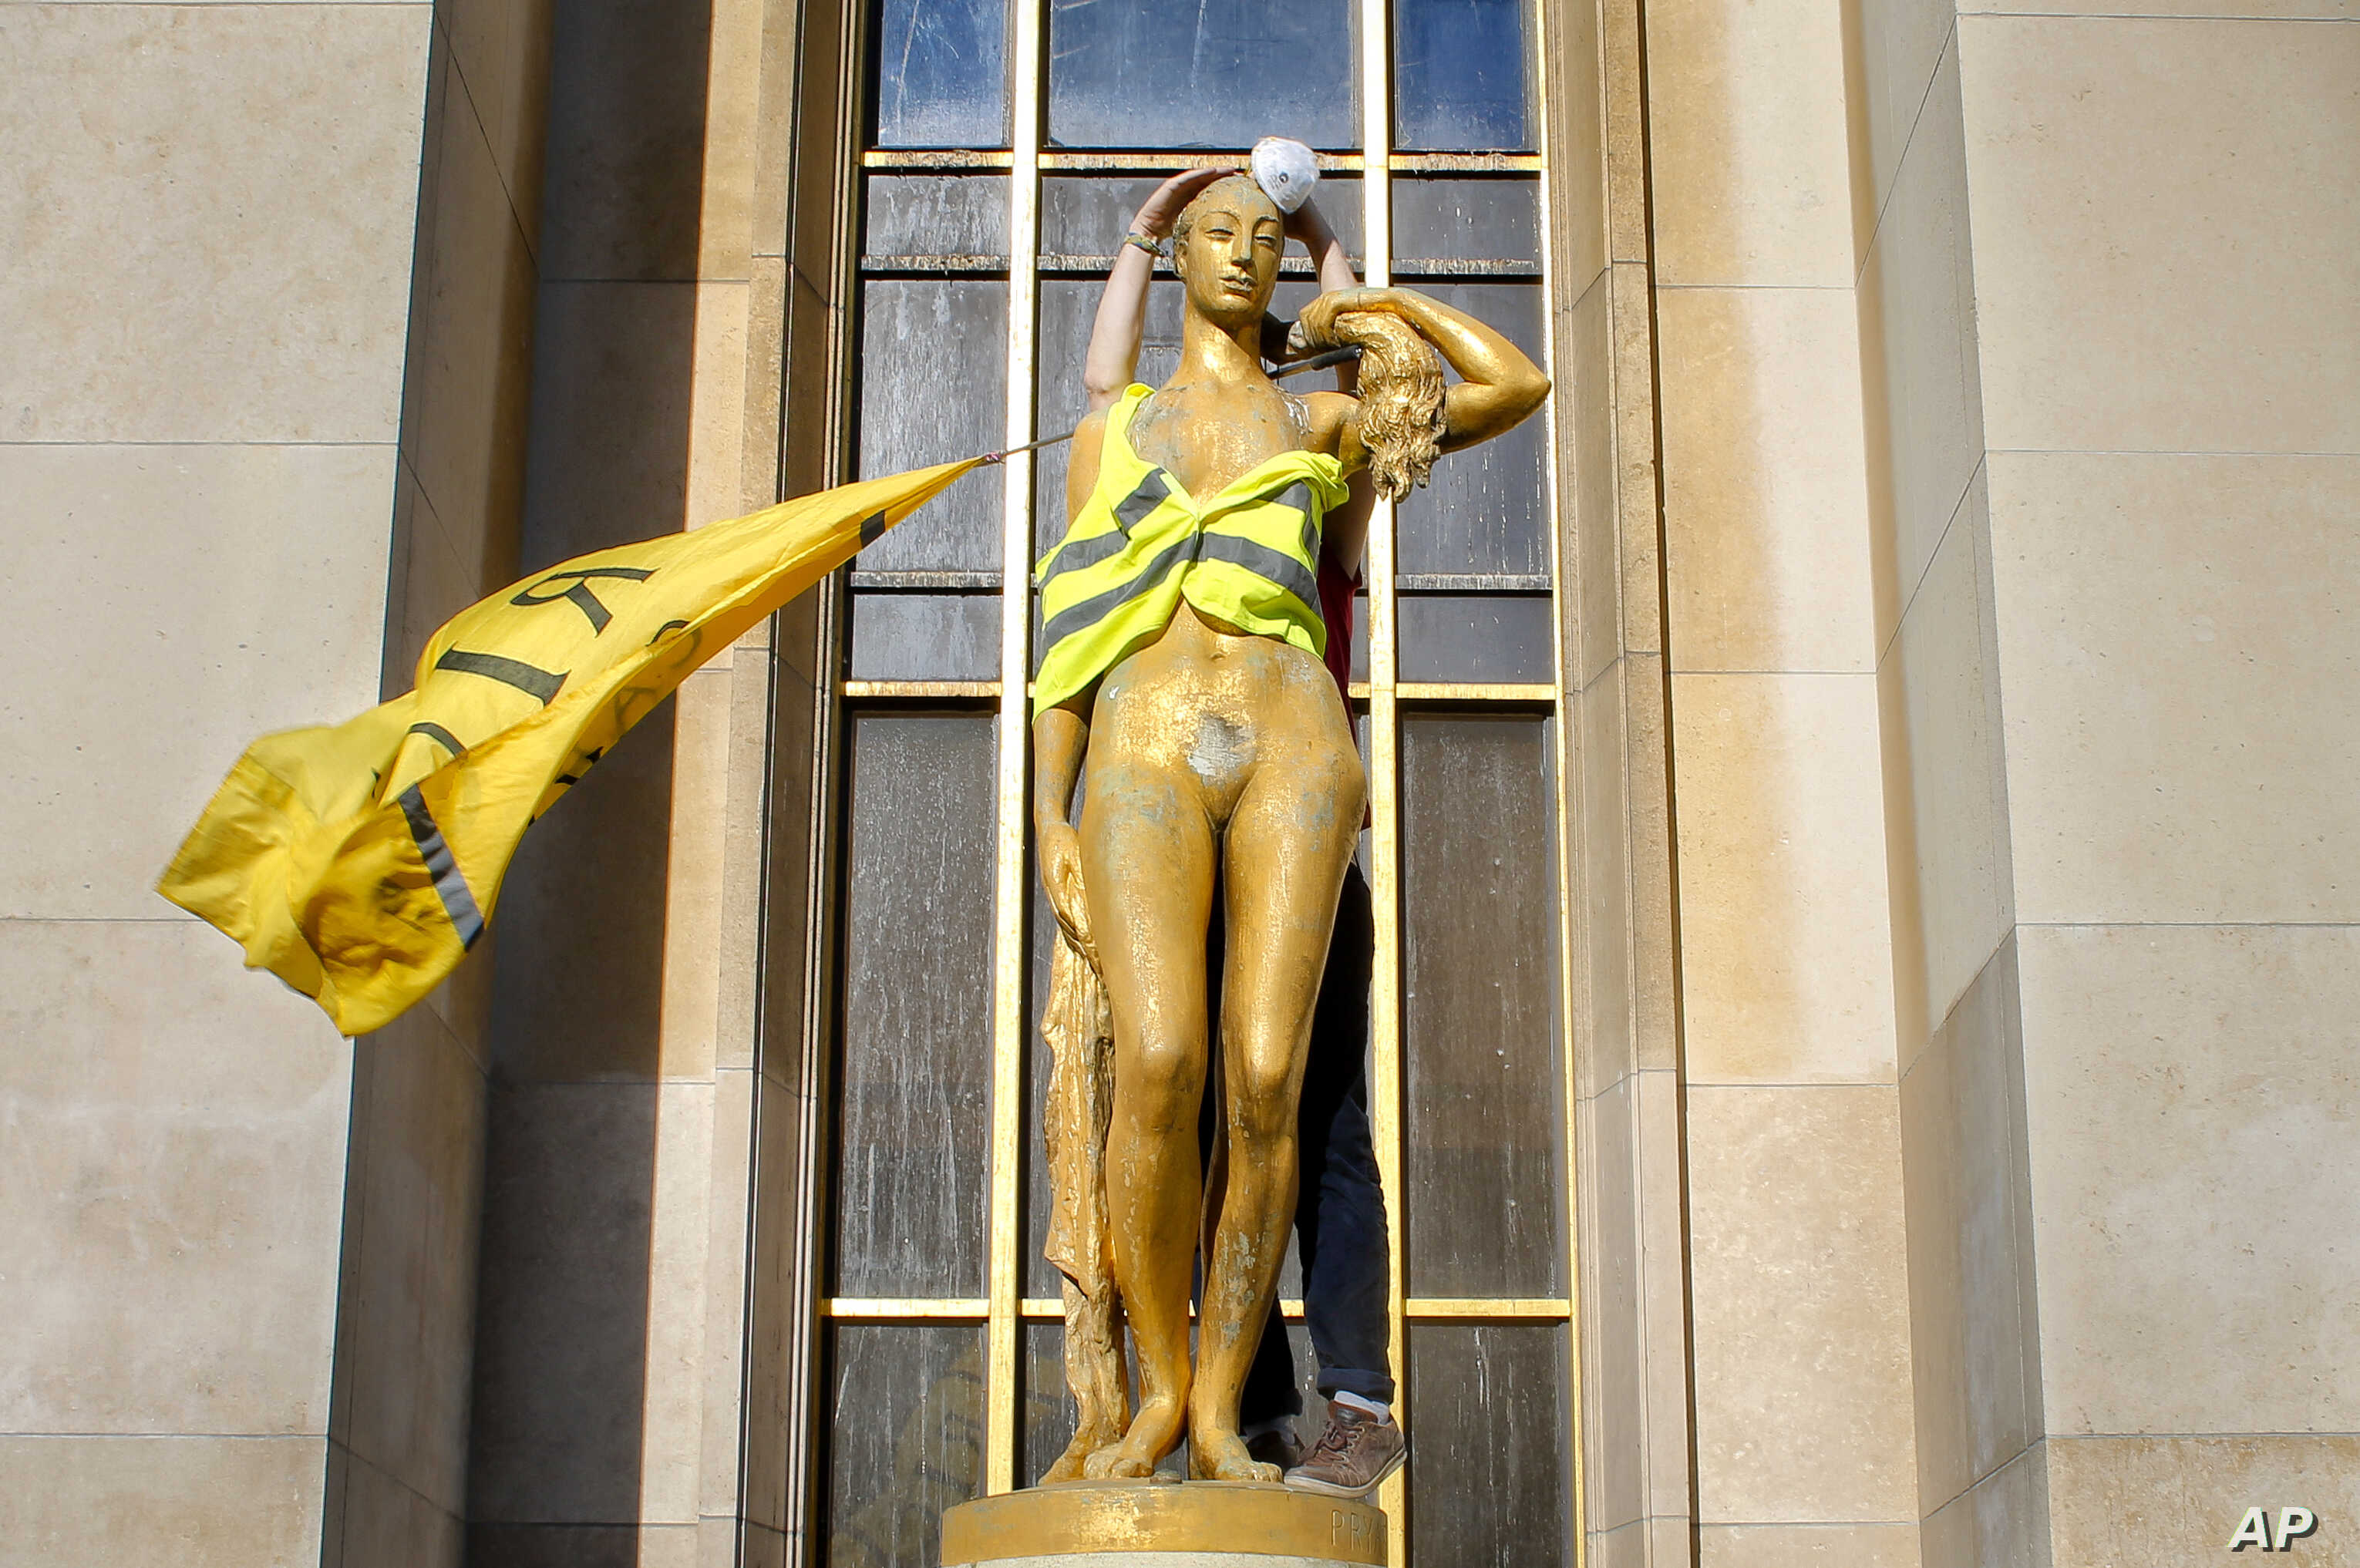 """A demonstrator places a mask and a yellow vest on a statue titled """"Le Matin,"""" or """"The Morning,"""" as French """"yellow vest"""" protesters rally in support of a fellow activist who was injured in a recent confrontation with police, March 30, 2019, in Trocade..."""